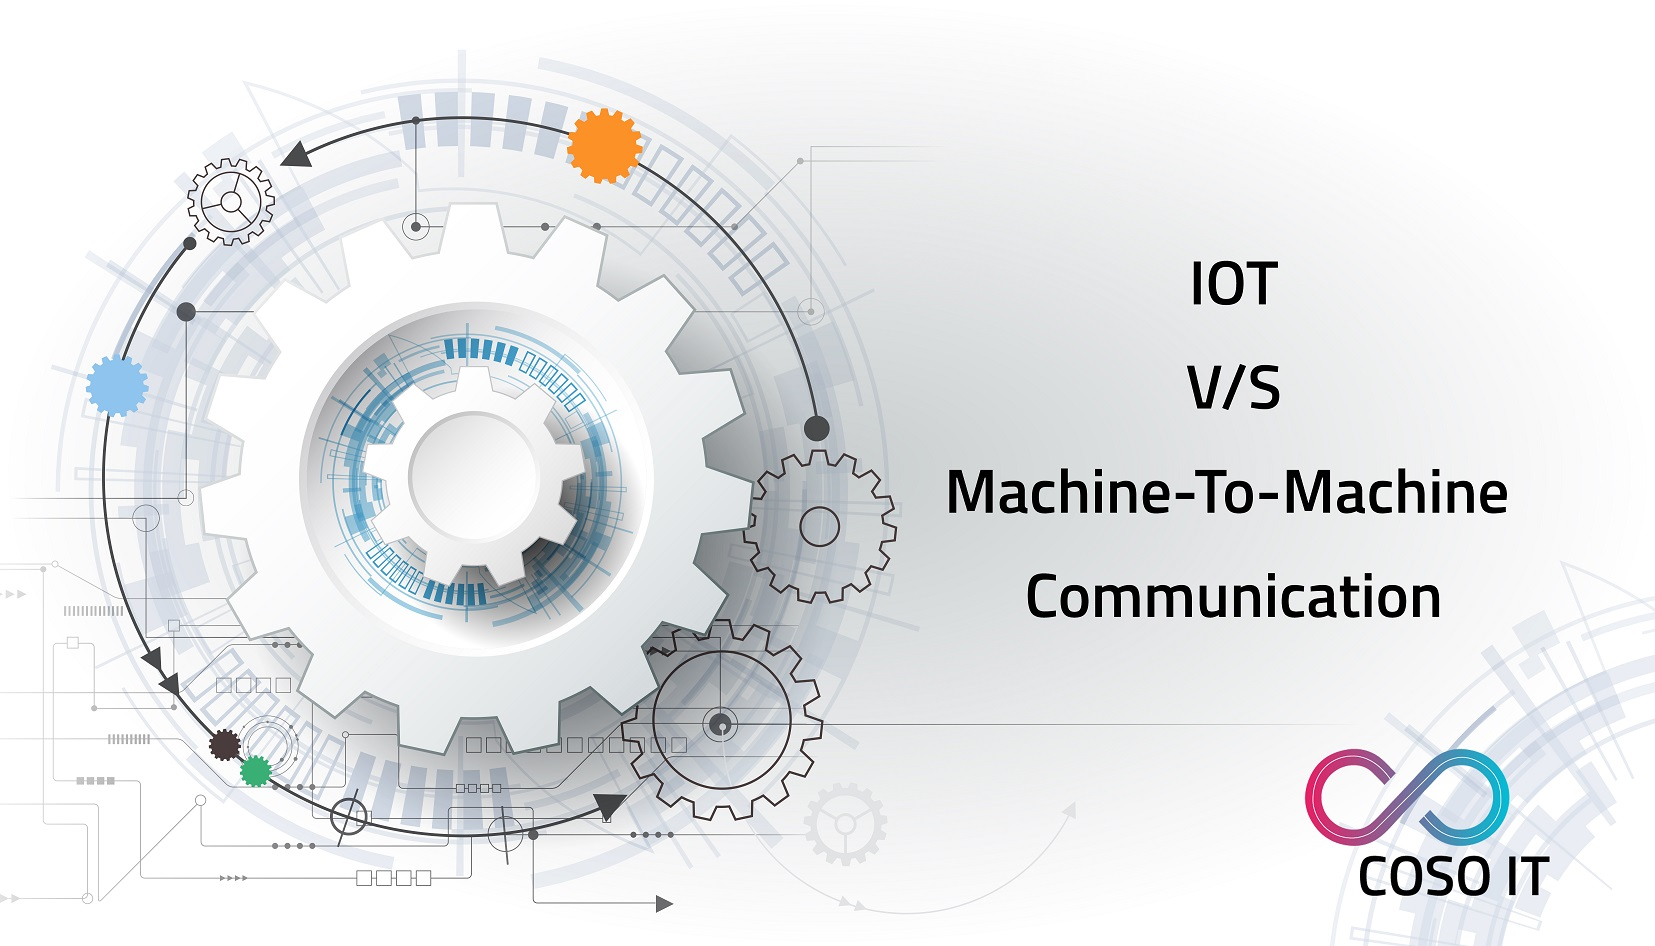 IoT Vs Machine-to-Machine Communication: Comparing The Key Aspects